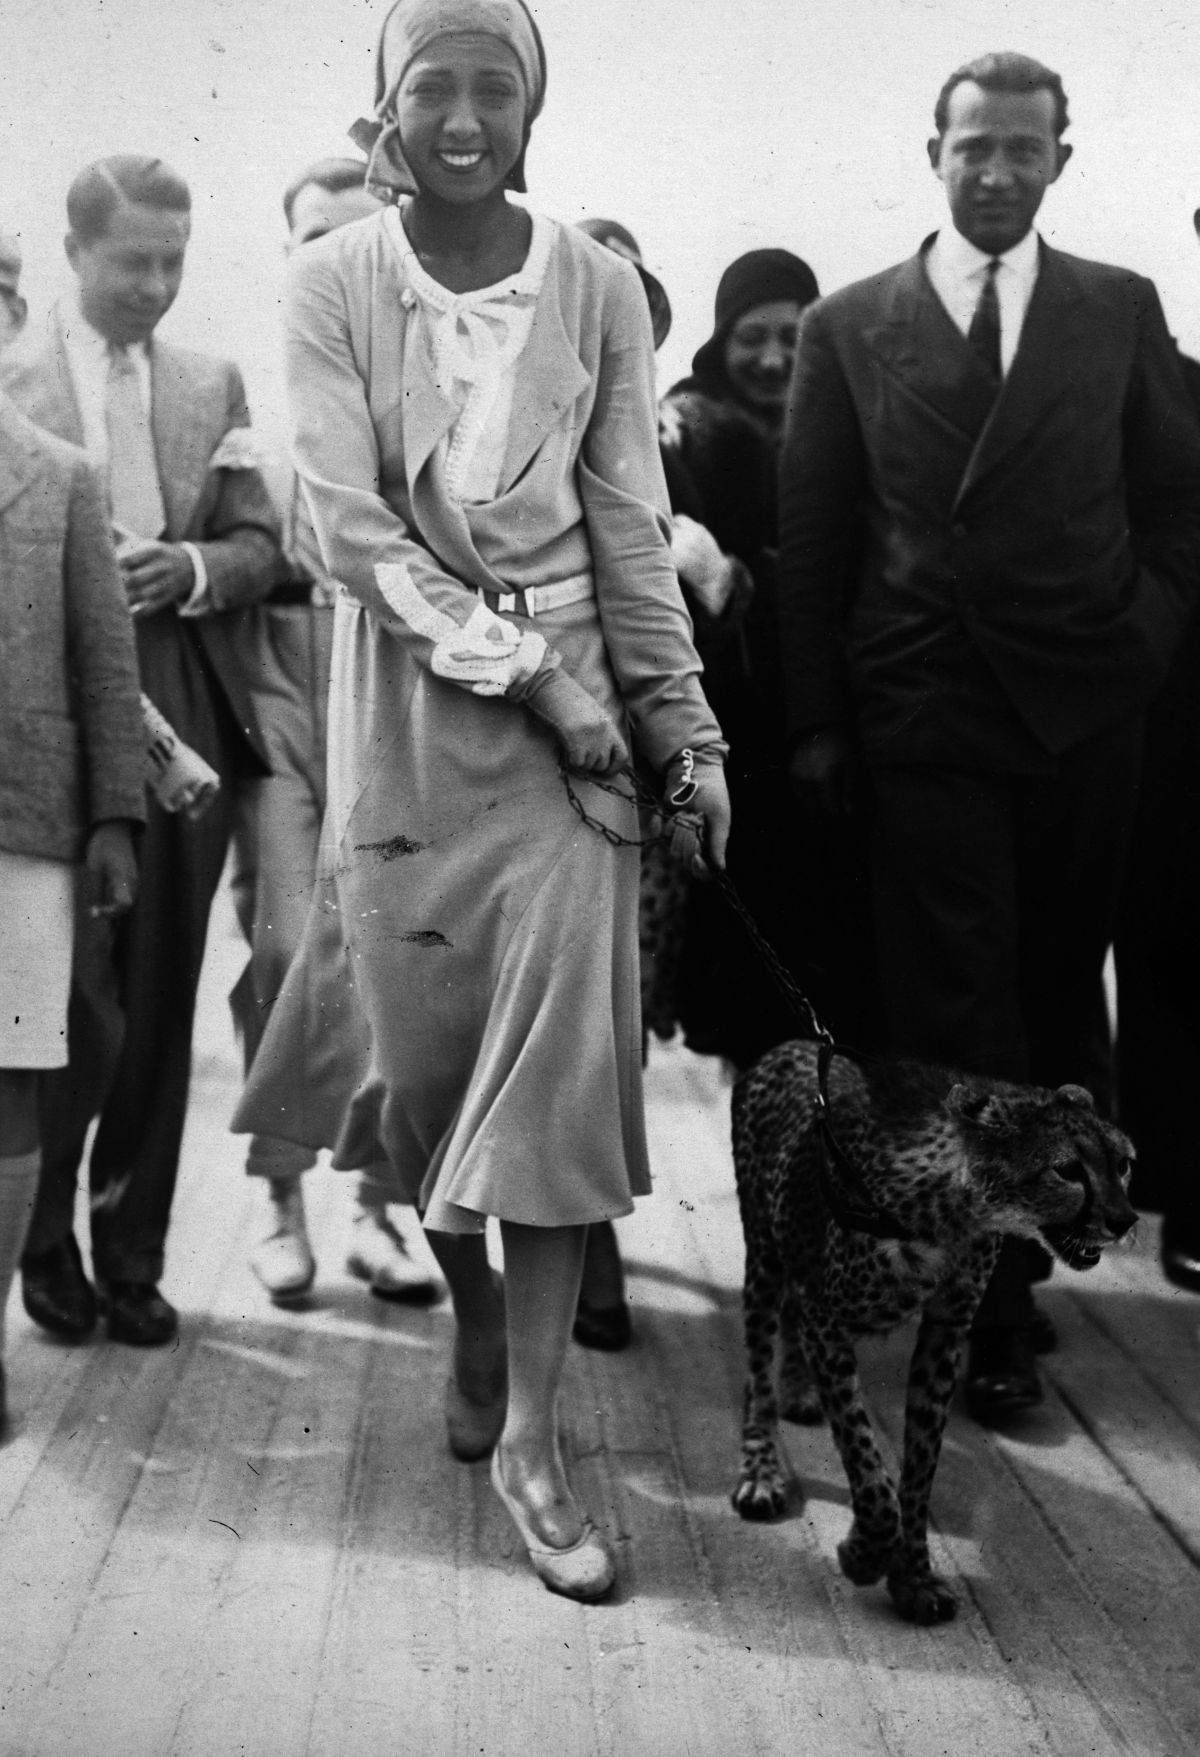 https://lisawallerrogers.files.wordpress.com/2014/07/josephine-baker-with-cheetah.jpg